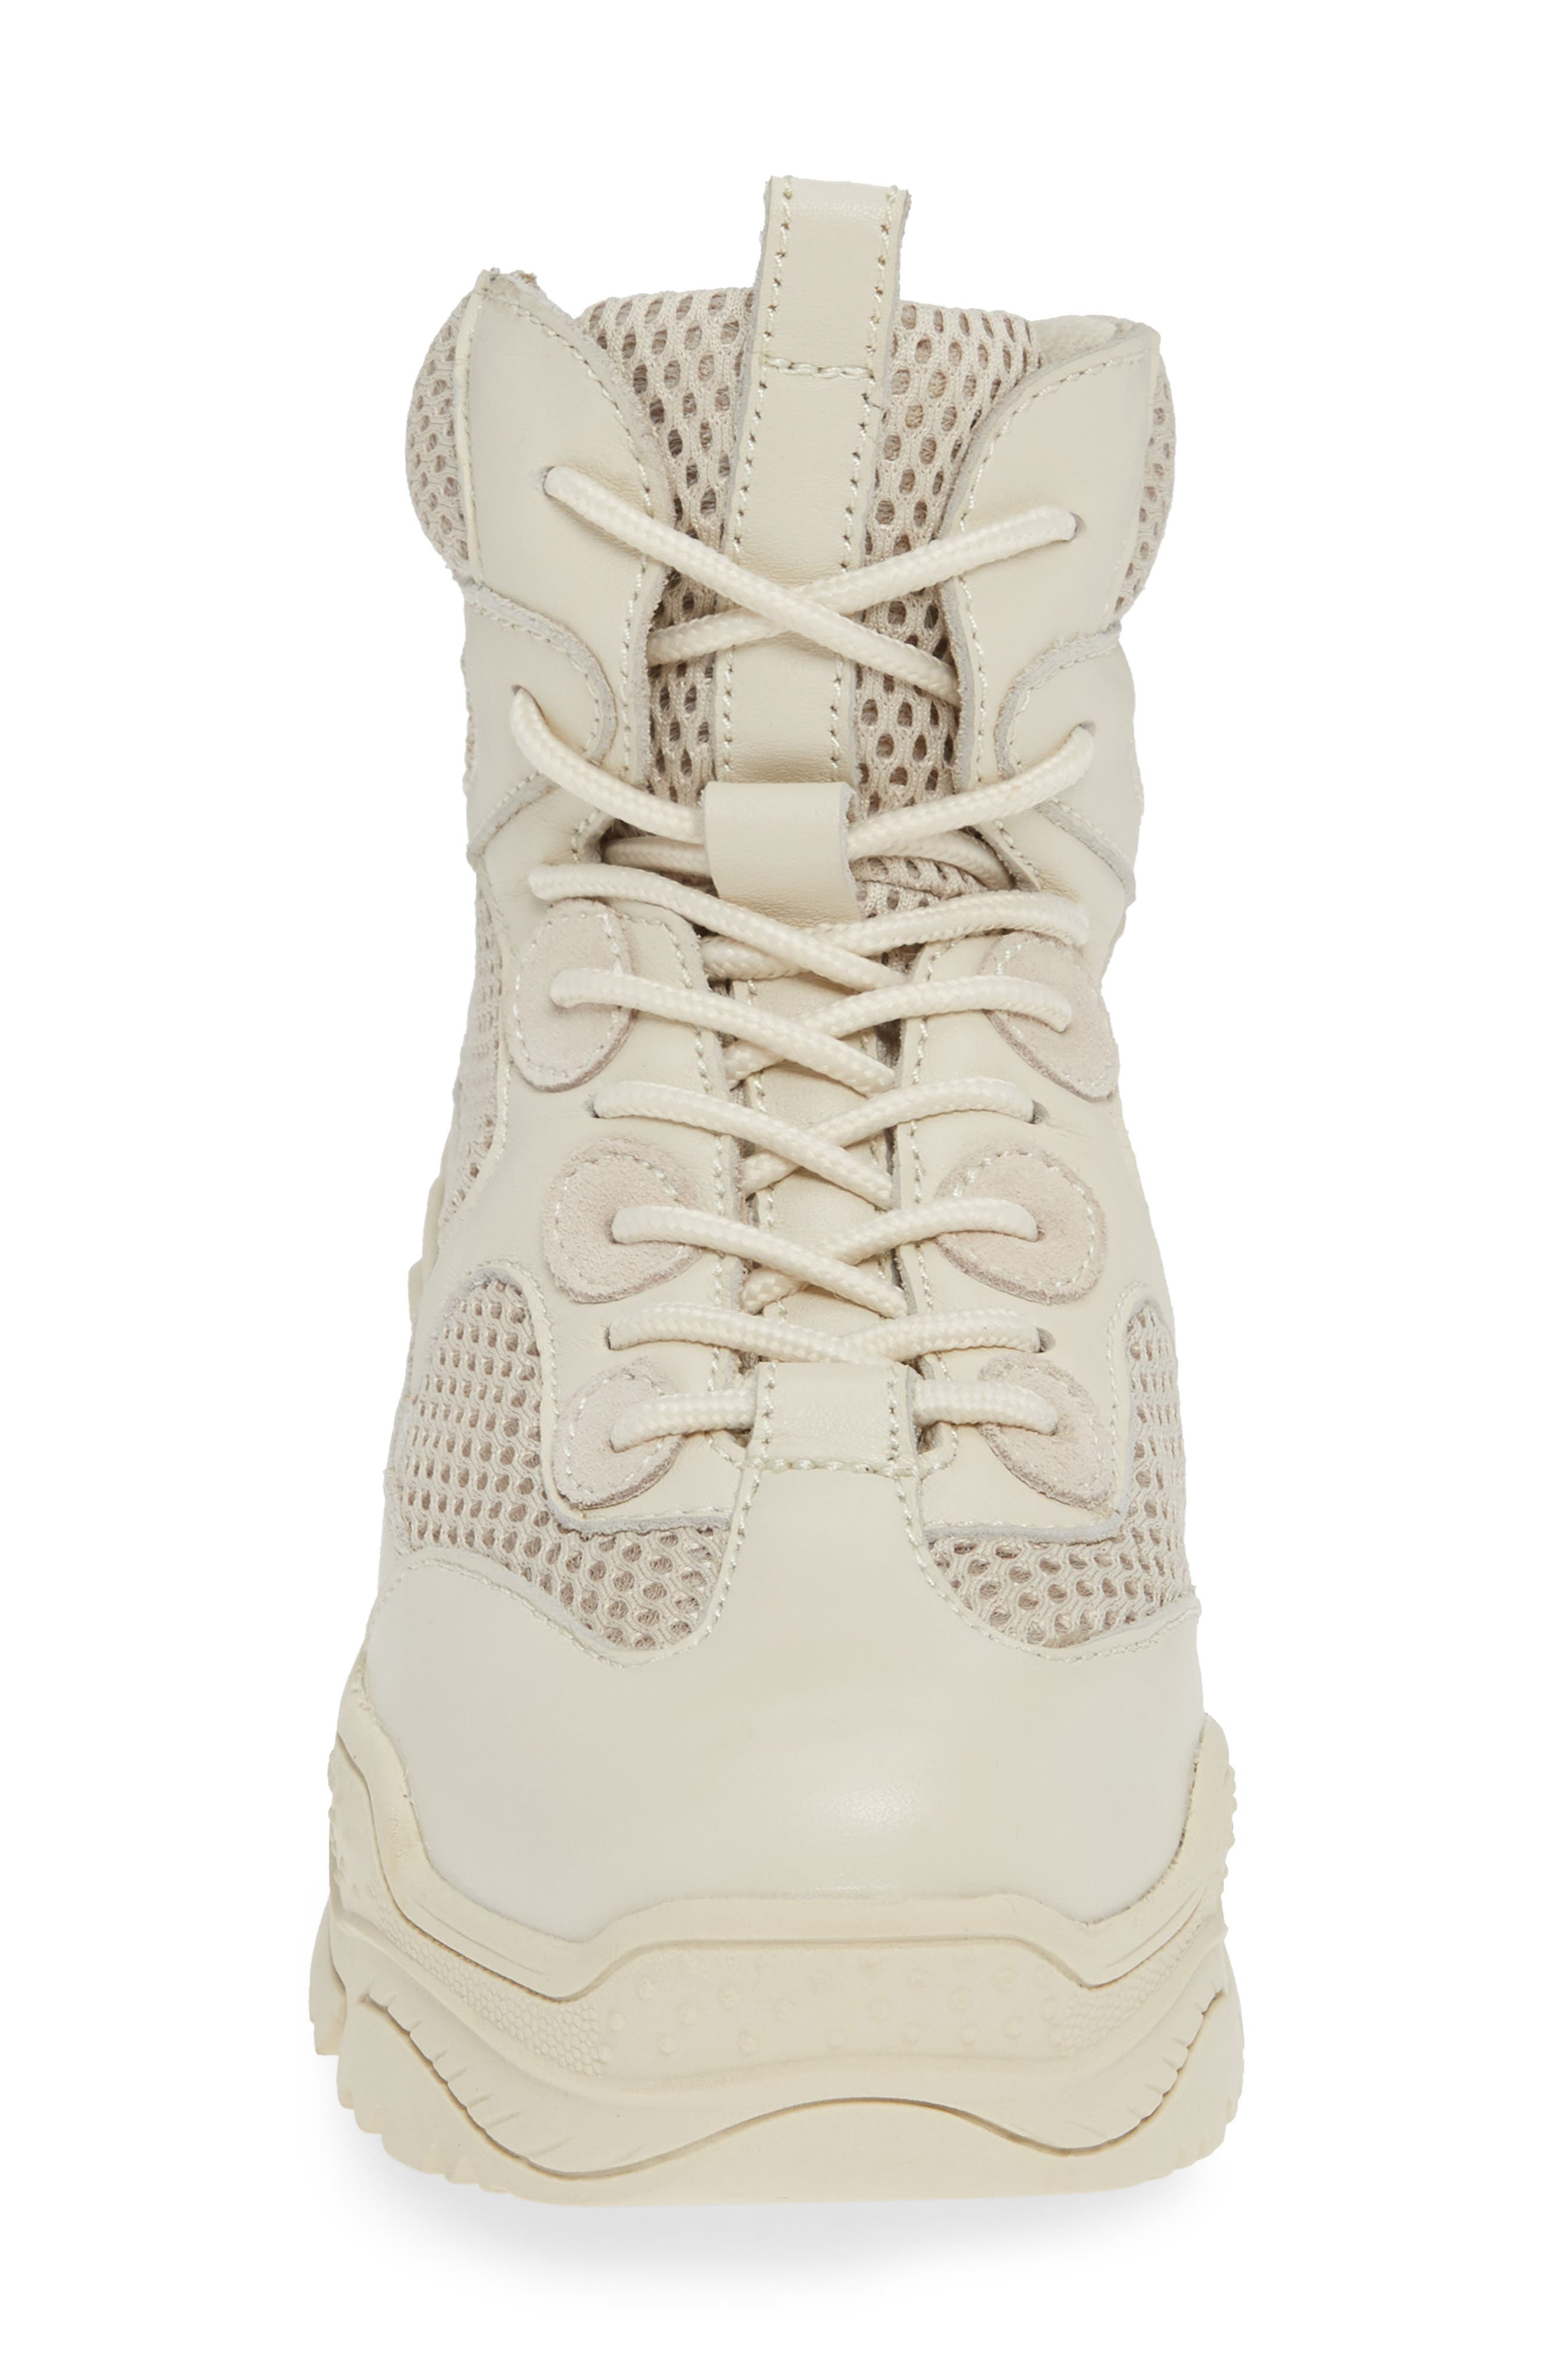 Pyro Wedge Sneaker Boot,                             Alternate thumbnail 4, color,                             OFF WHITE COMBO